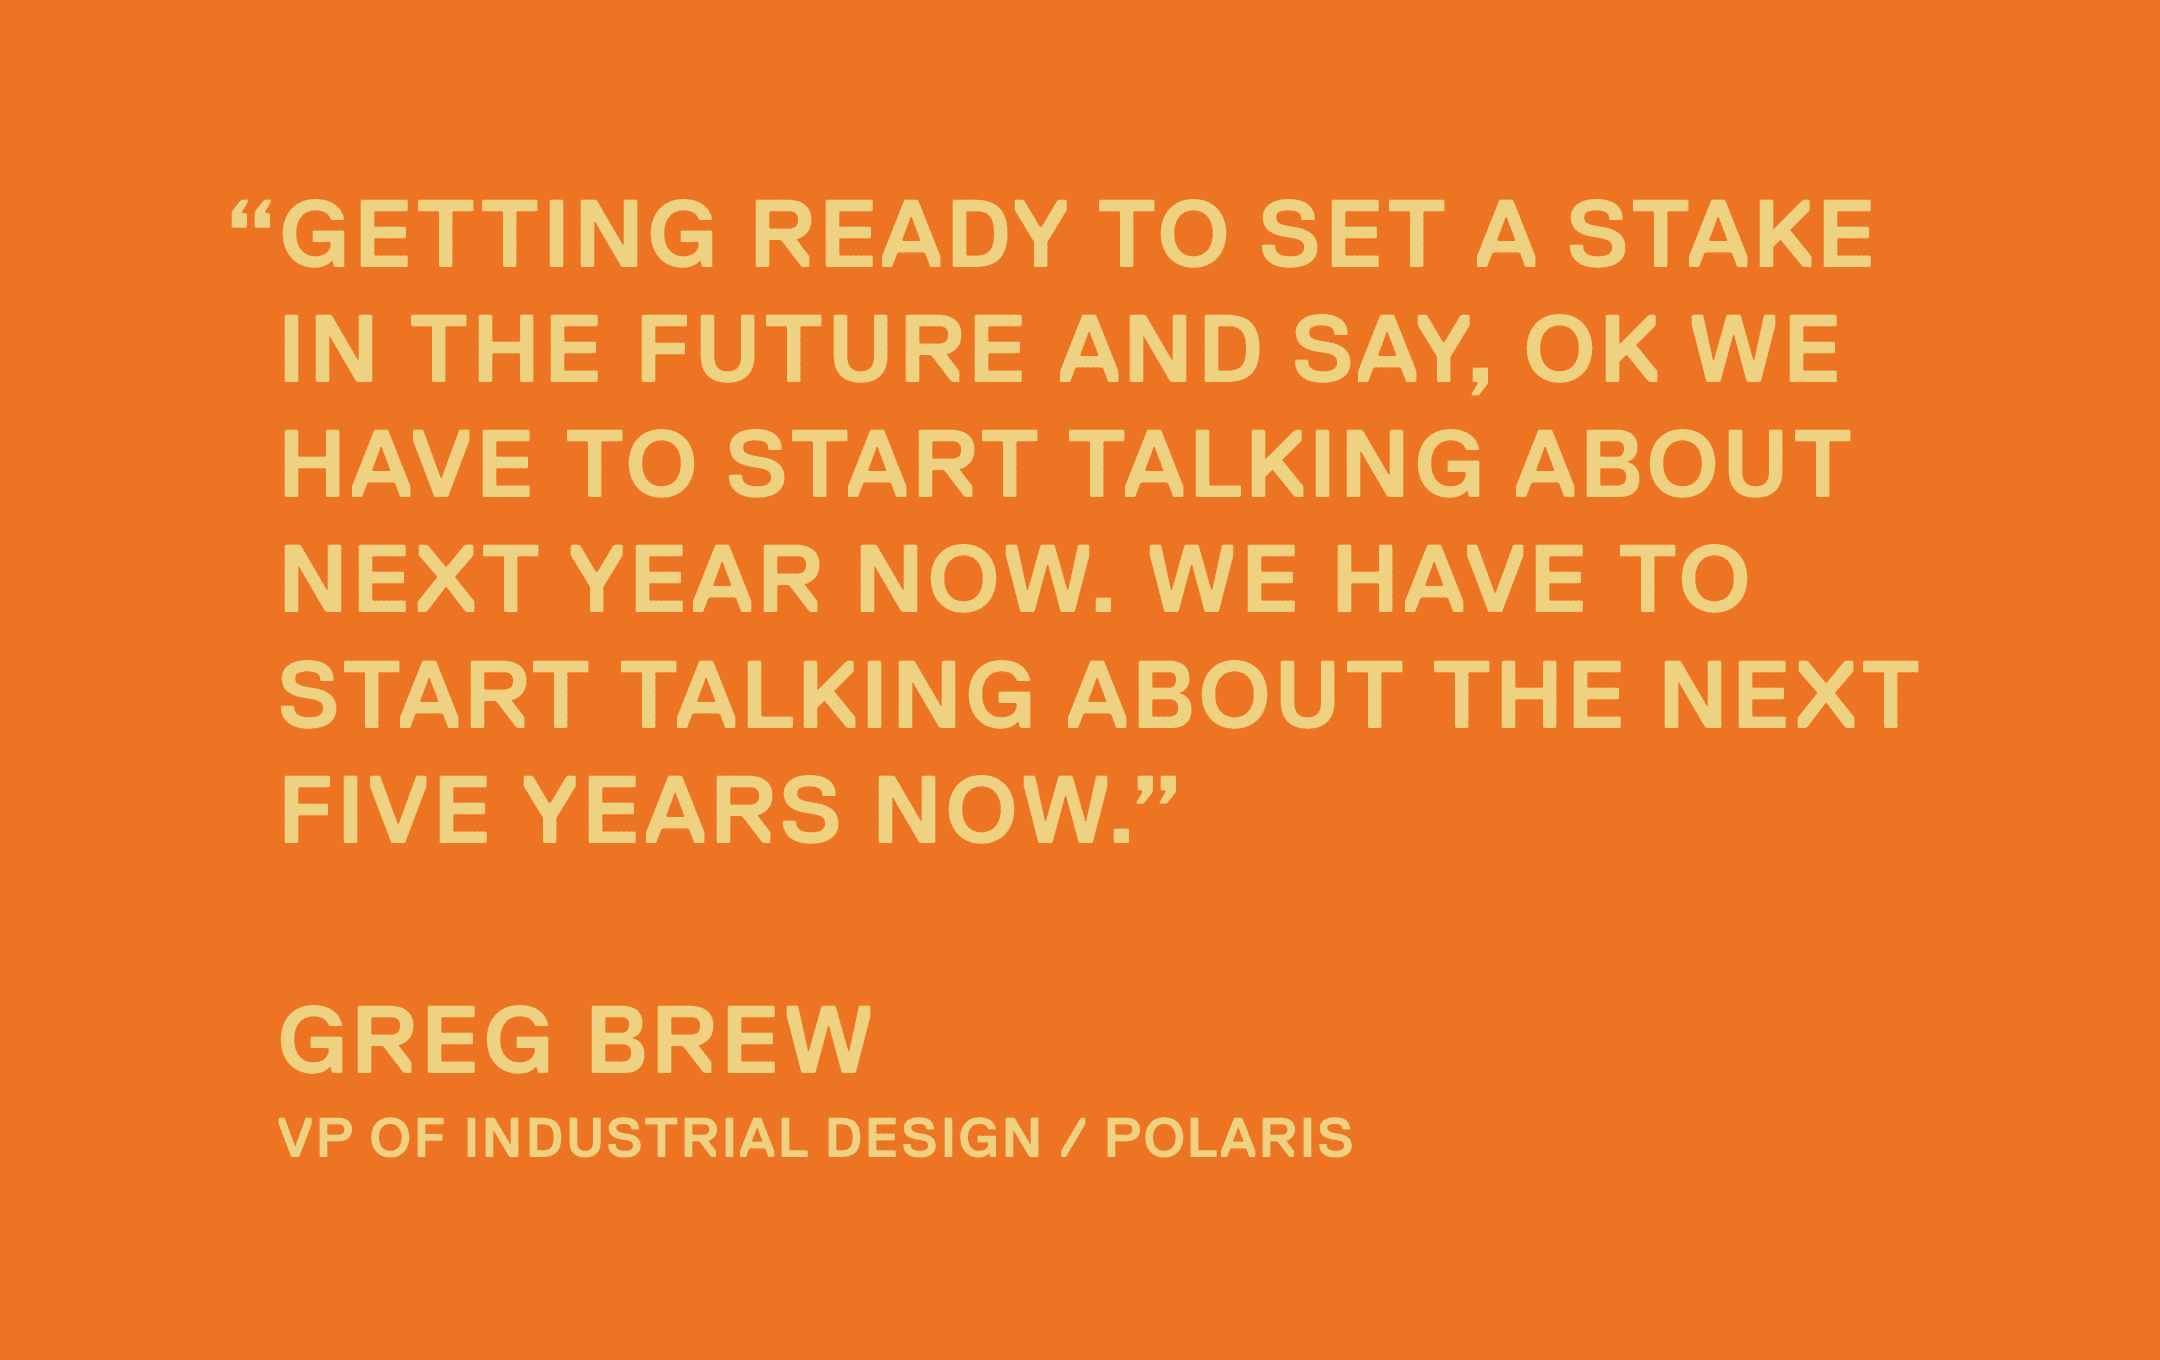 Getting ready to set a stake in the future and say, ok we have to start talking about next year now. We have to start talking about the next five years now. — Greg Brew, VP of Industrial Design / Polaris